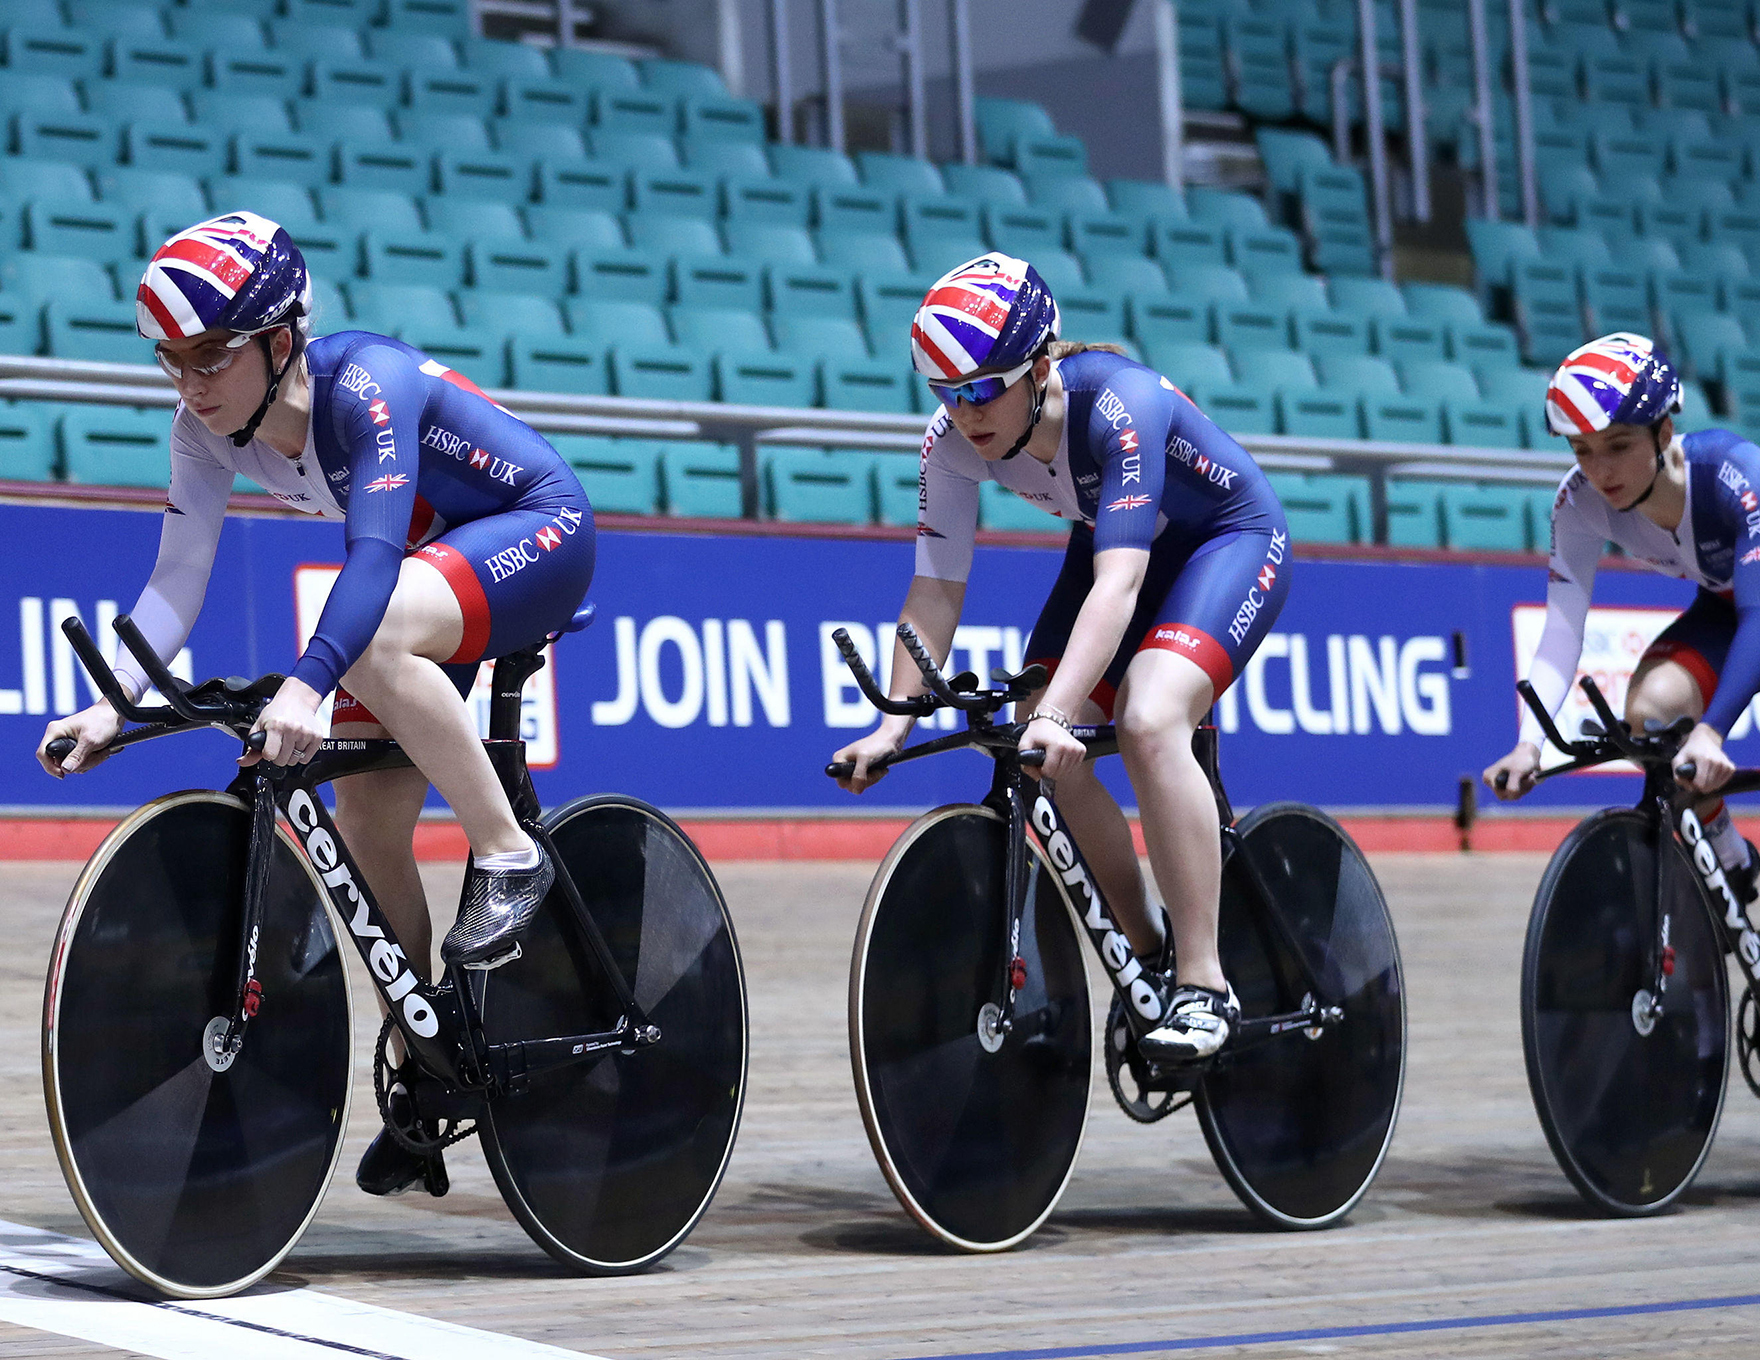 Laura Kenny And Team Gb Training At Mancehster National Cycling Centre L